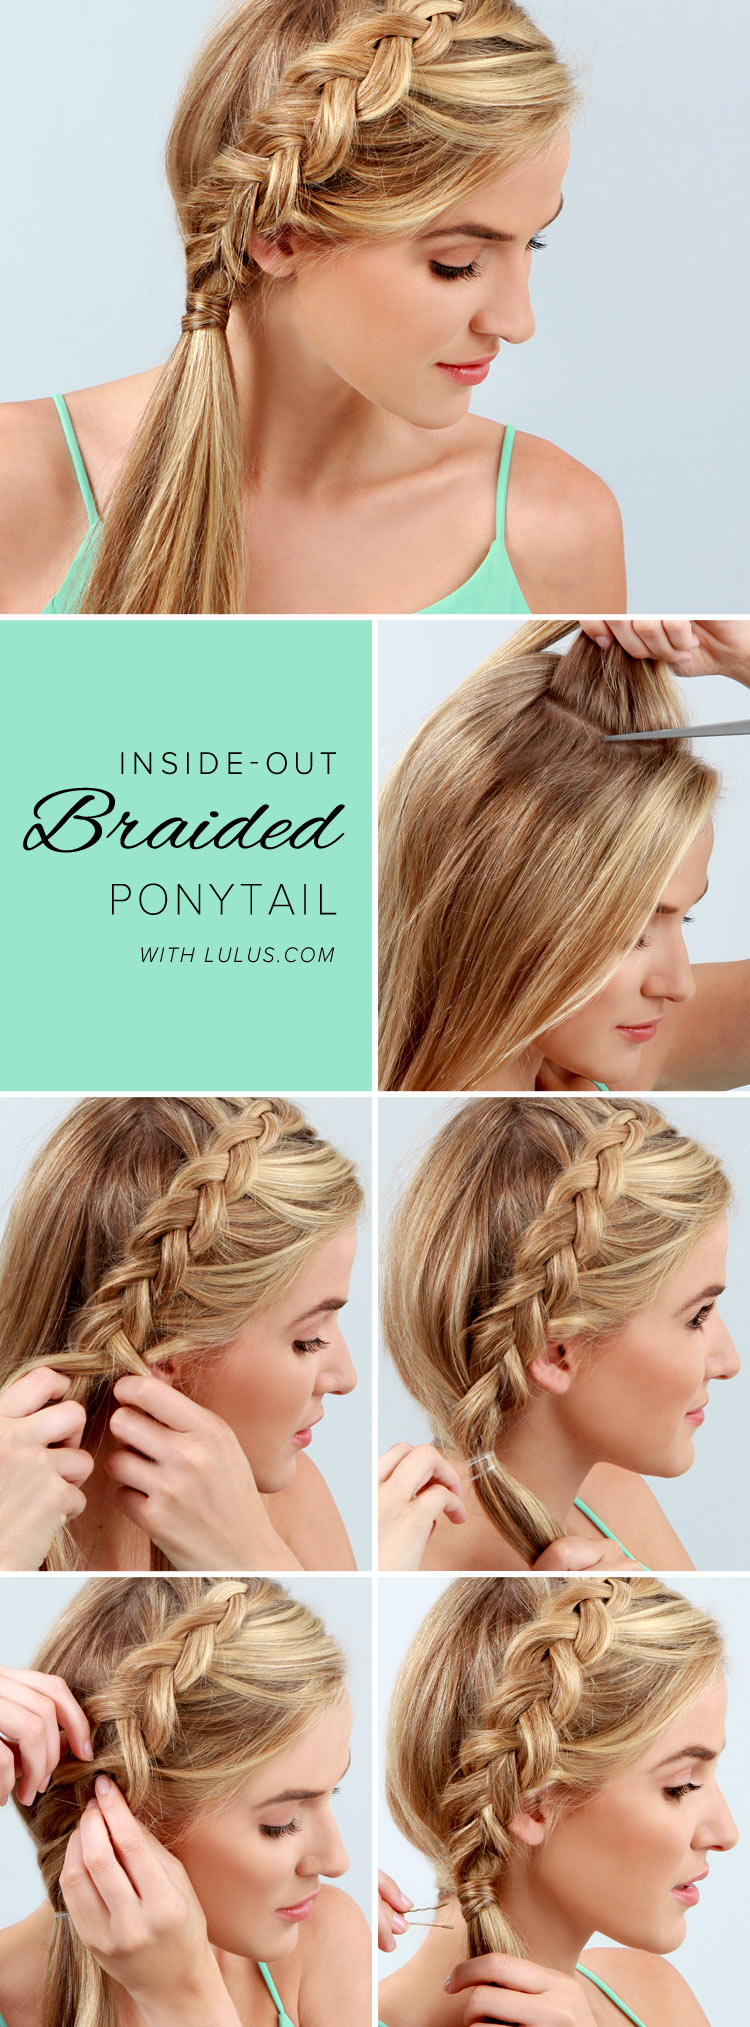 braided ponytai